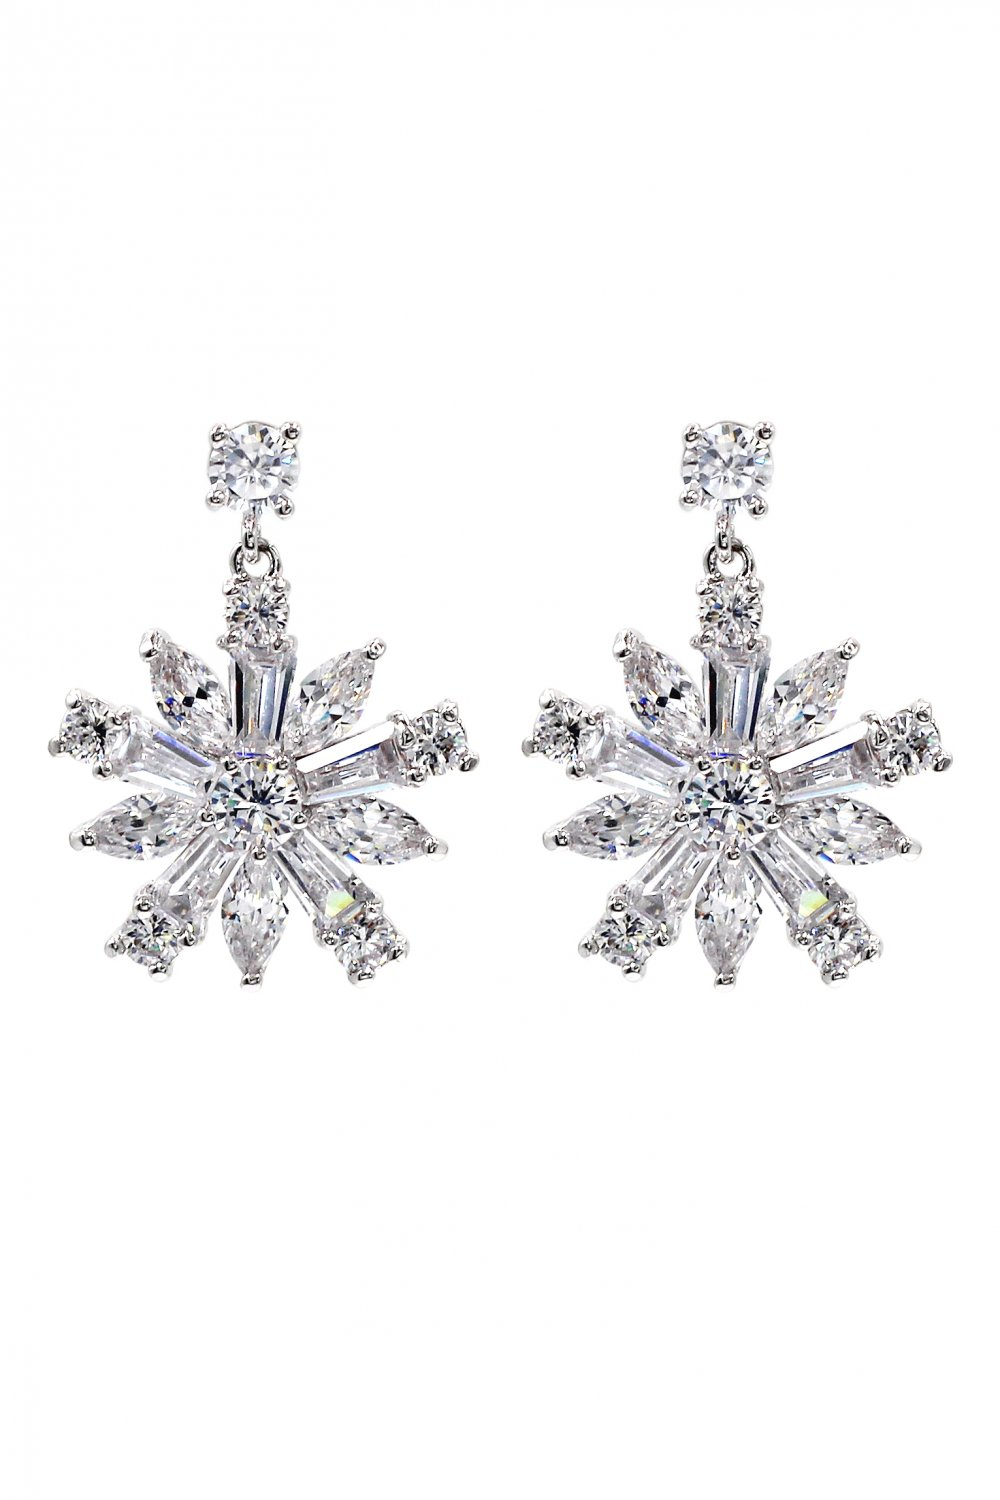 Fashion sparkling crystal silver earrings